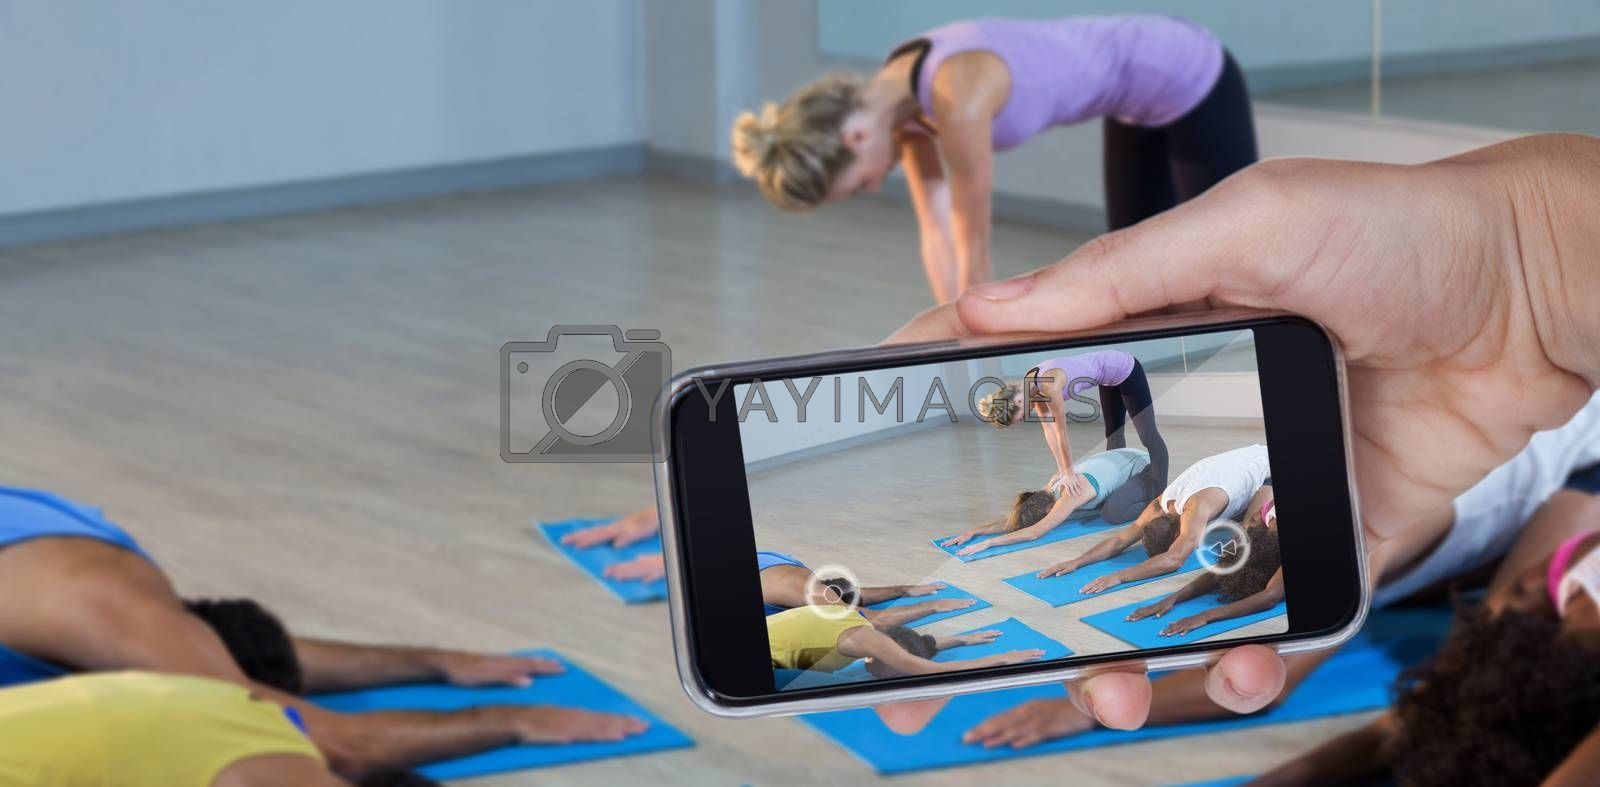 Hand holding mobile phone against white background against yoga instructor helping student with correct pose